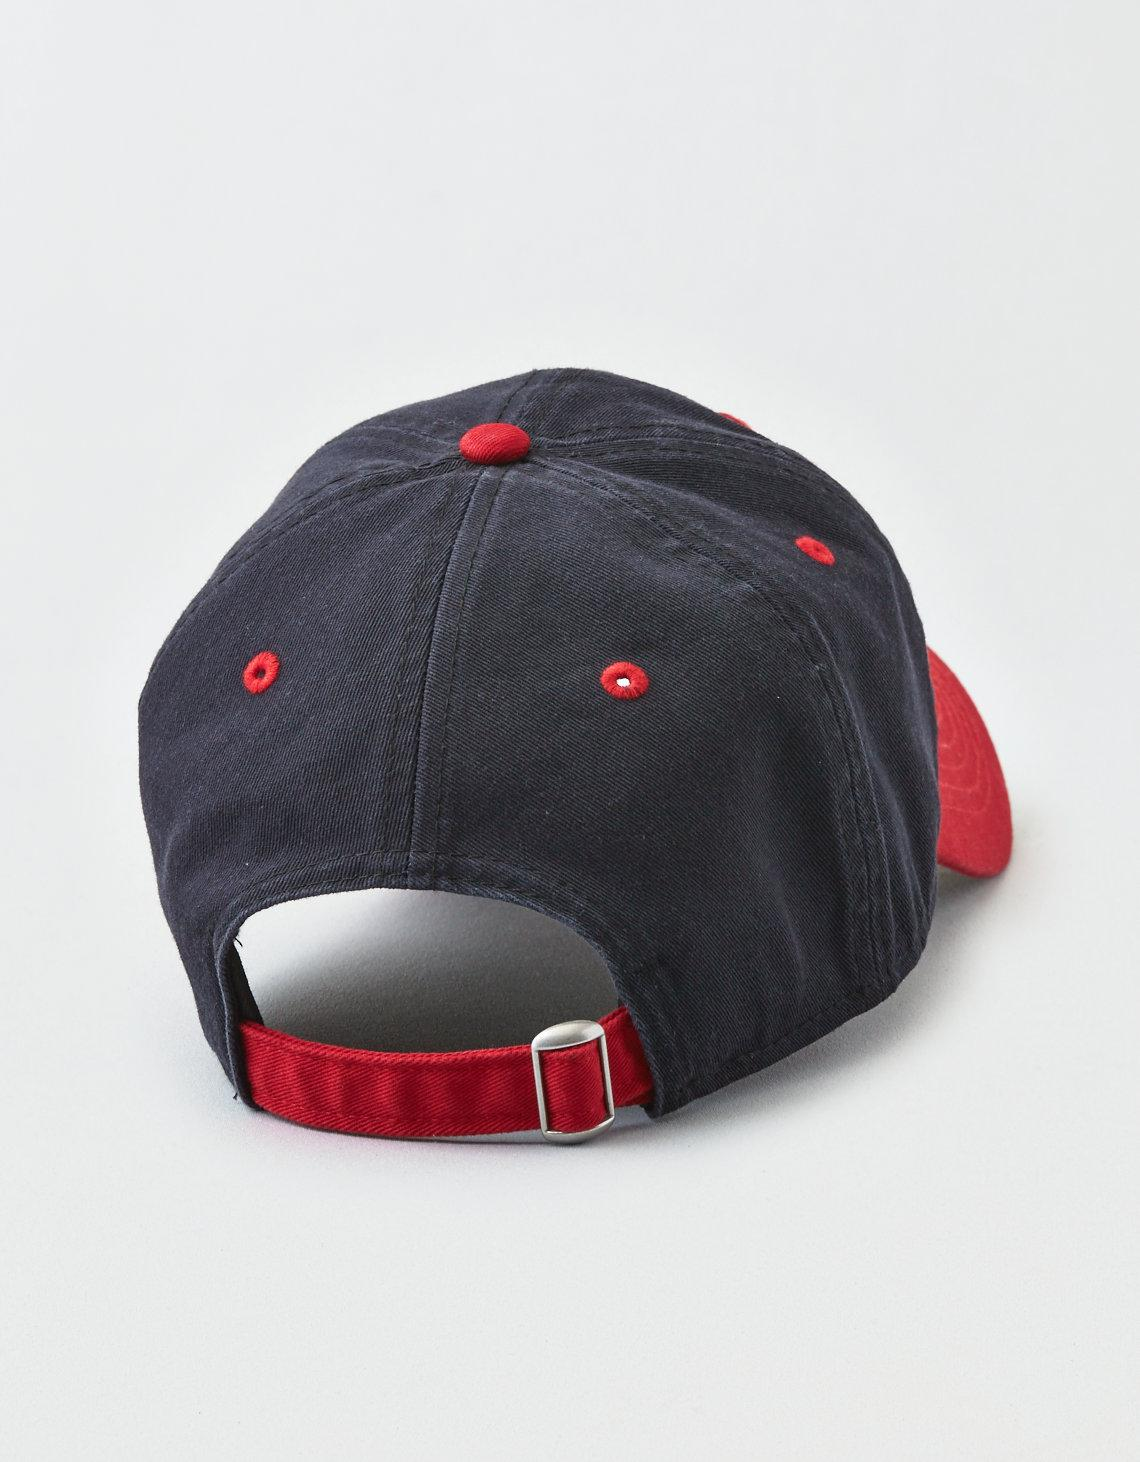 Lyst - Tailgate Limited-edition New Era X Boston Baseball Hat in Blue 5ce0a347cb5a